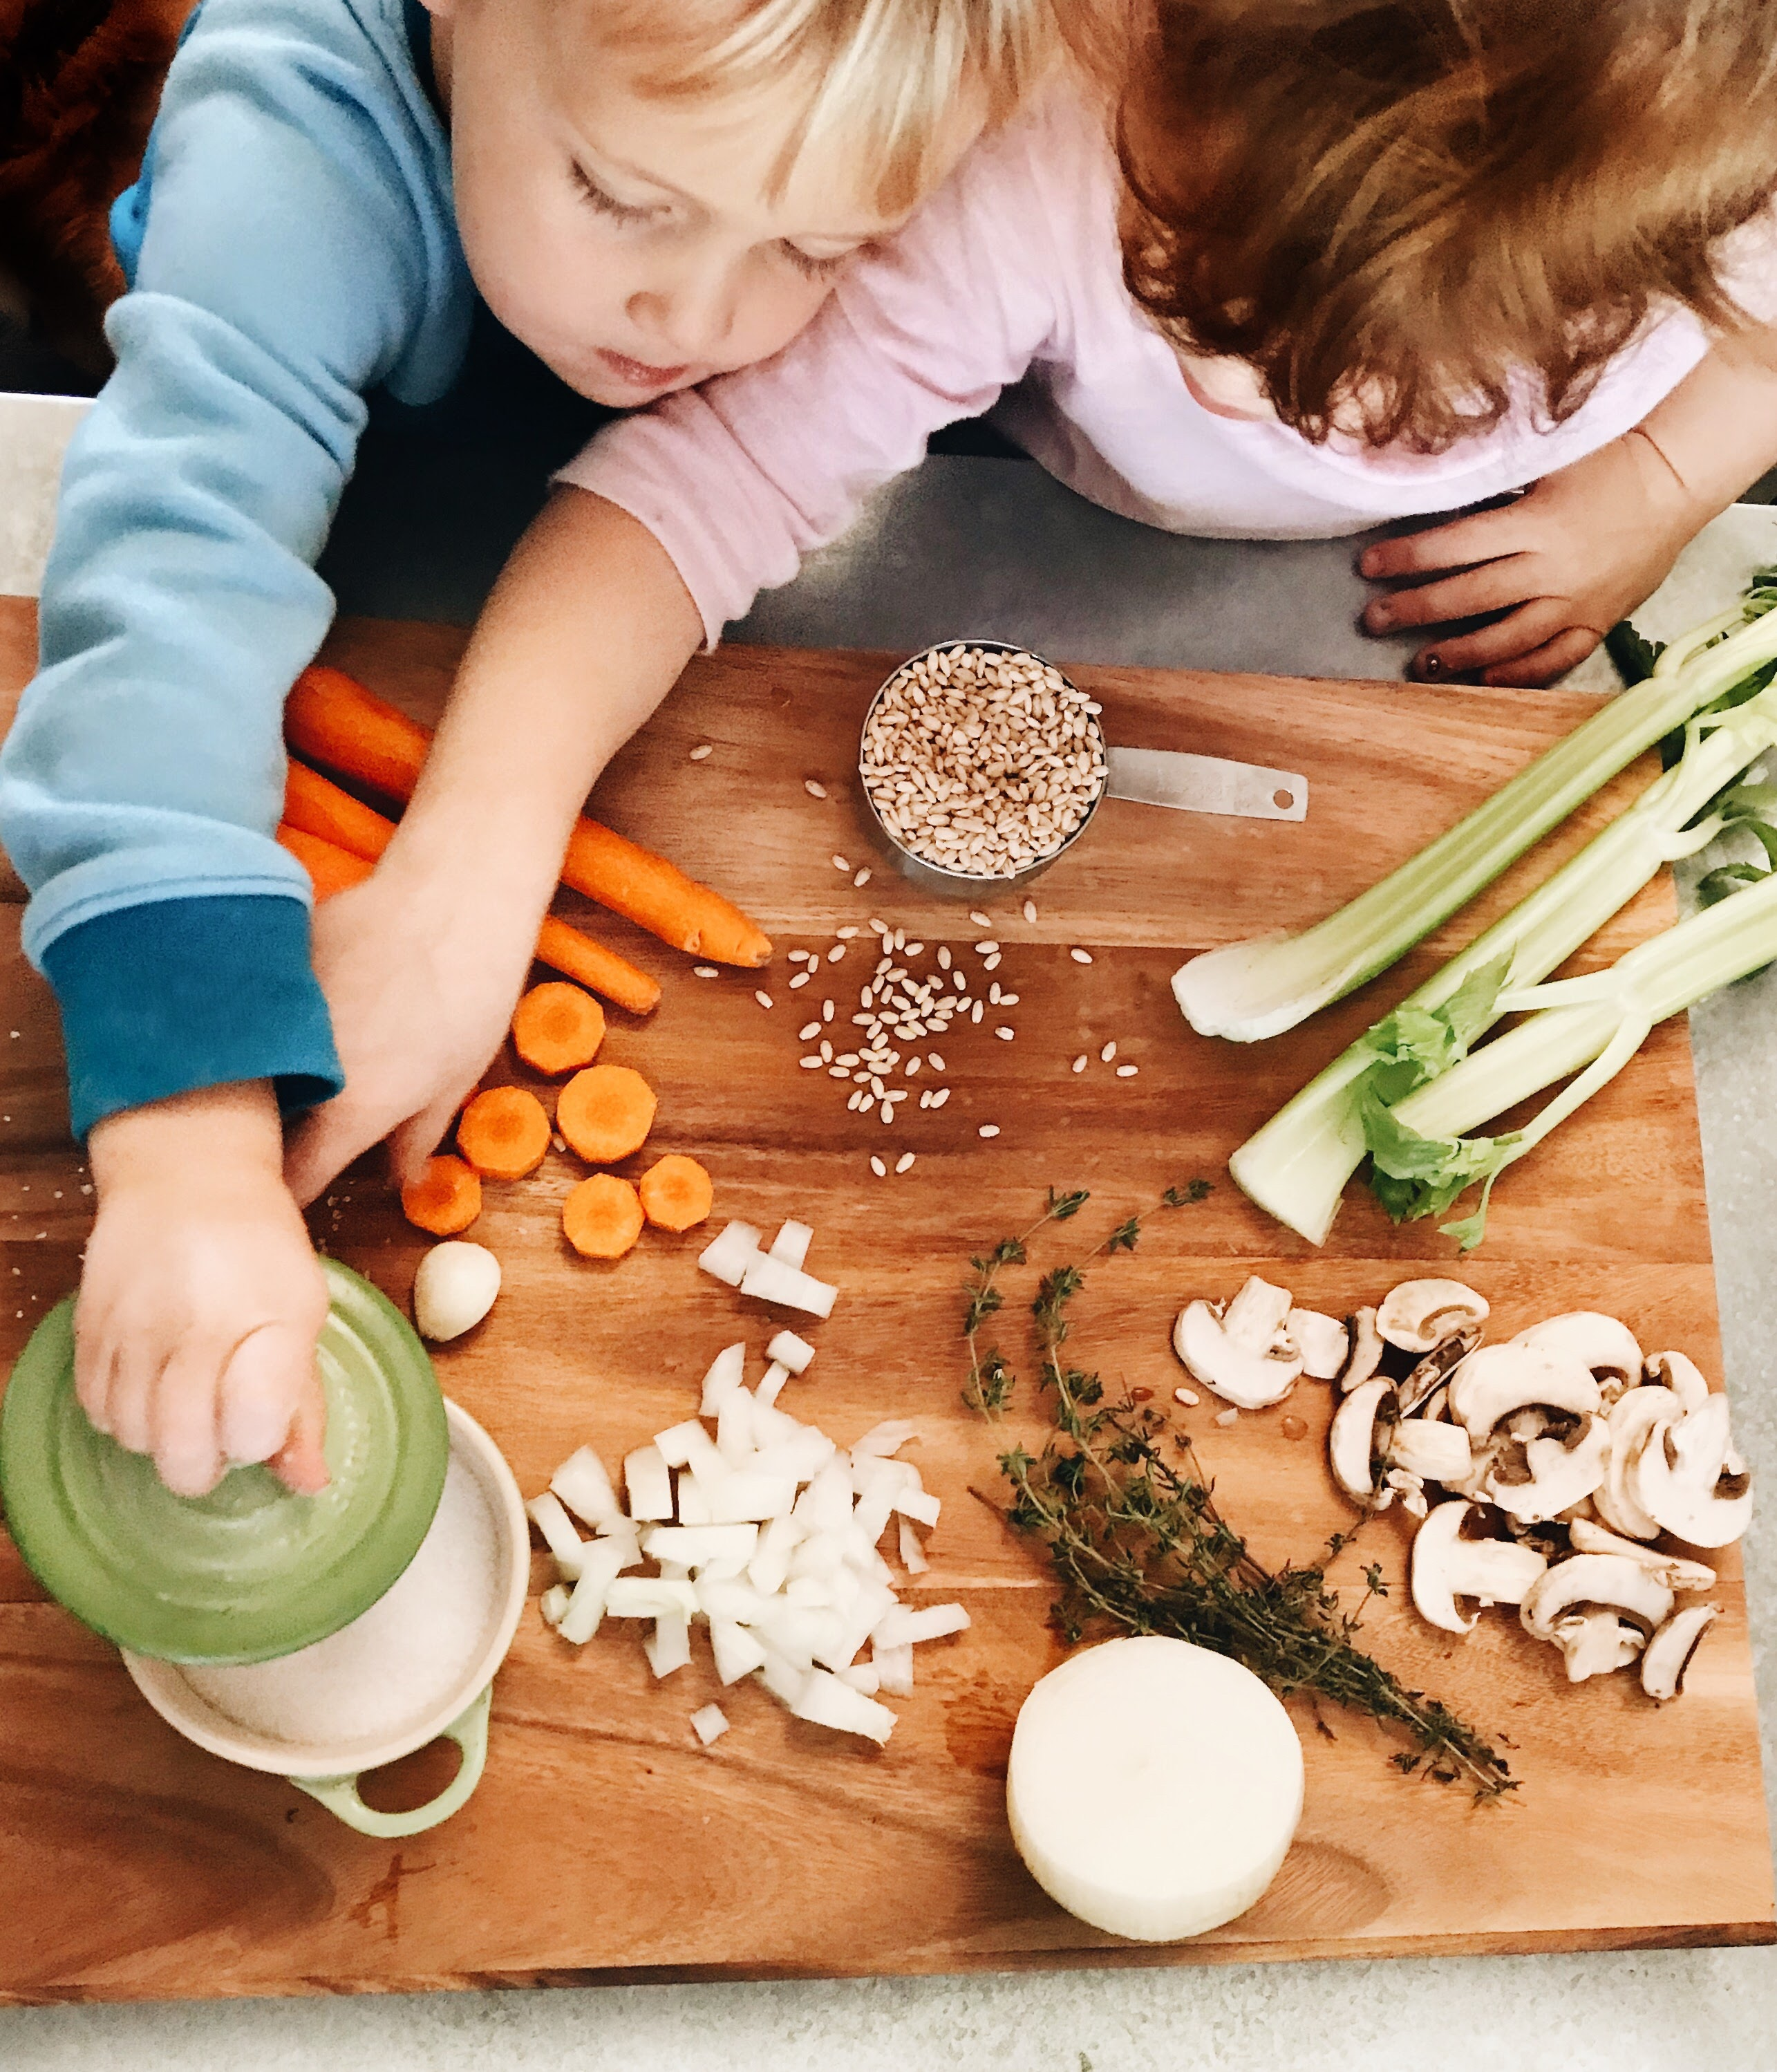 Barley Soup for Kids and Ironwood Cutting Boards